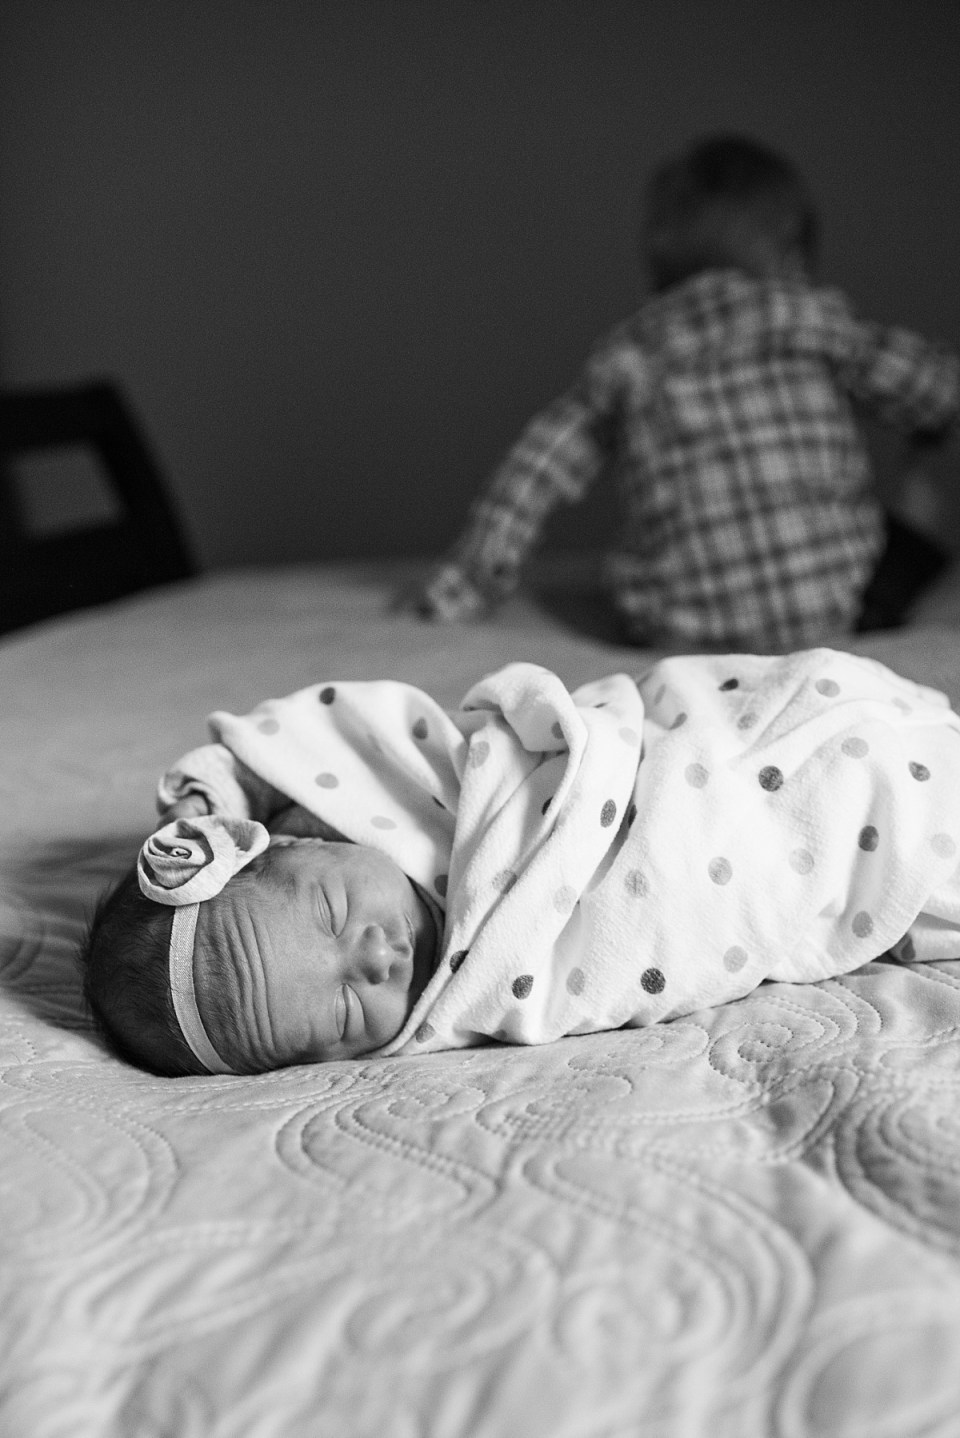 Black and White Newborn Photography with Sibling in Fairfax, VA